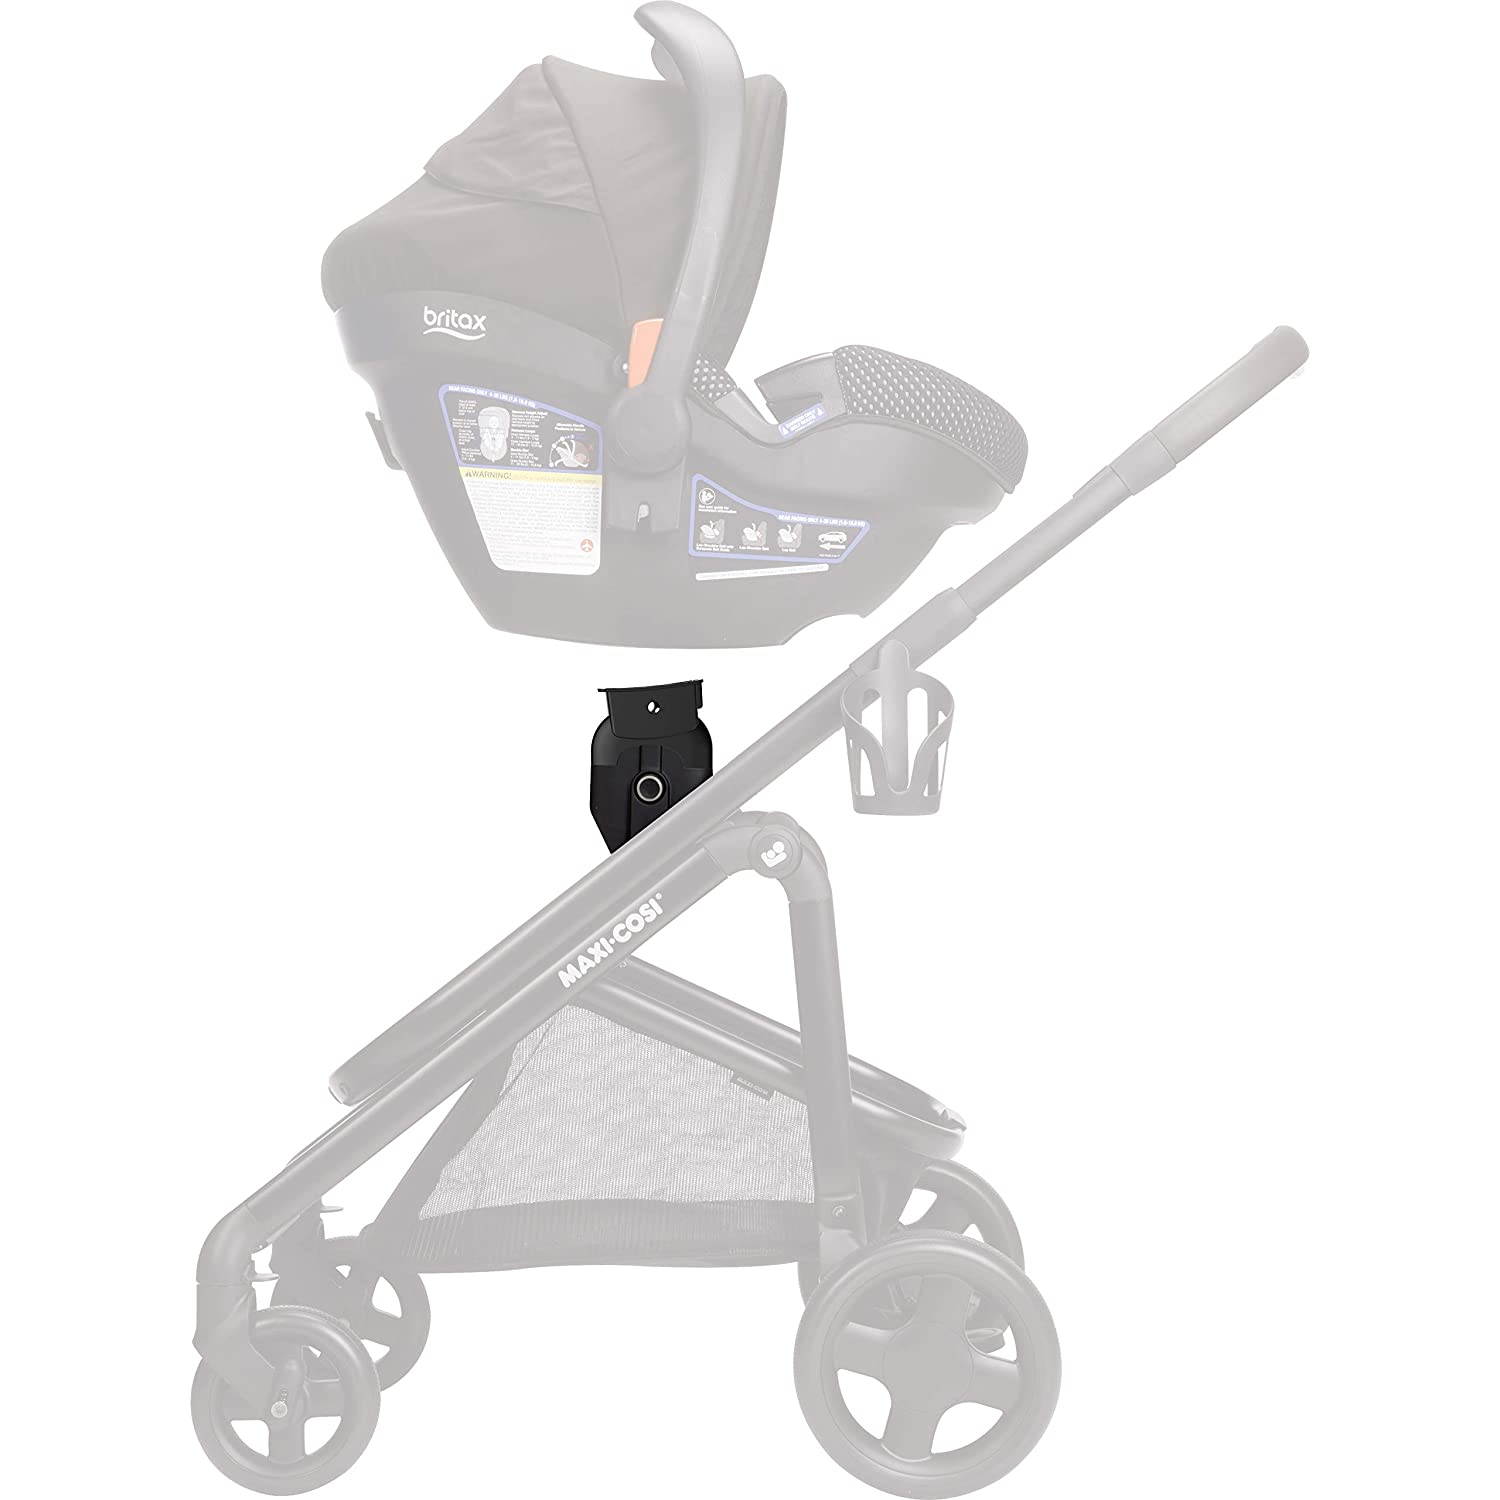 Maxi-Cosi Adapter for Select Maxi-Cosi Strollers and Britax Car Seats, Black